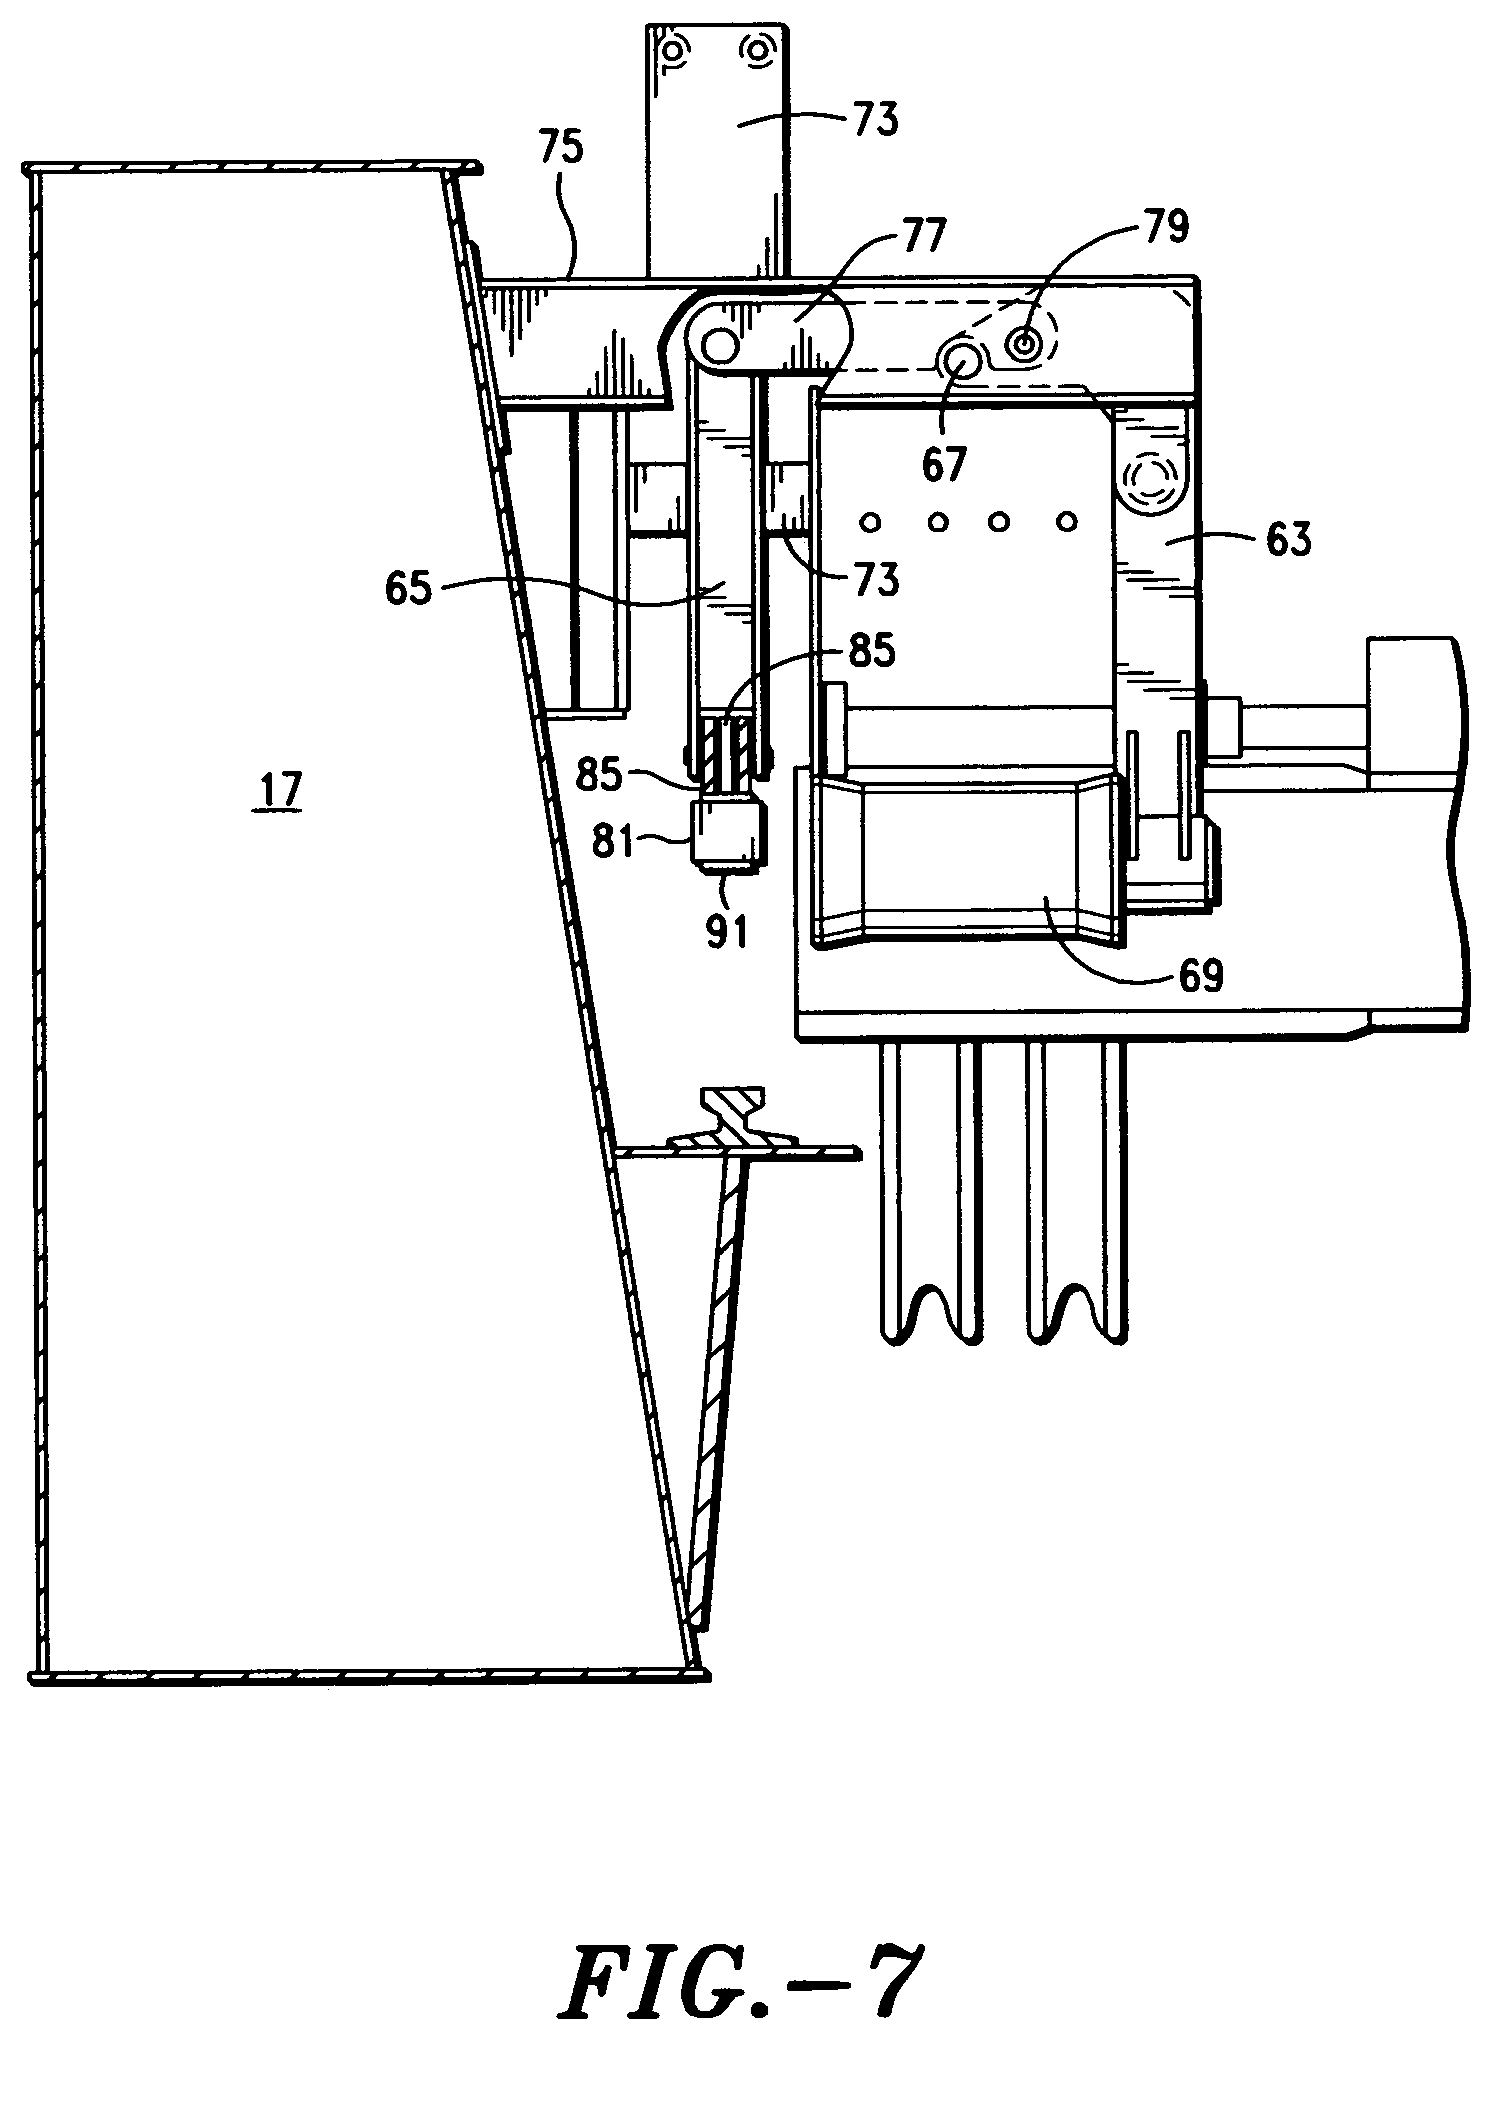 US07073673 20060711 D00007 patent us7073673 wire rope reeving support system for cargo wire rope reeving diagrams at crackthecode.co